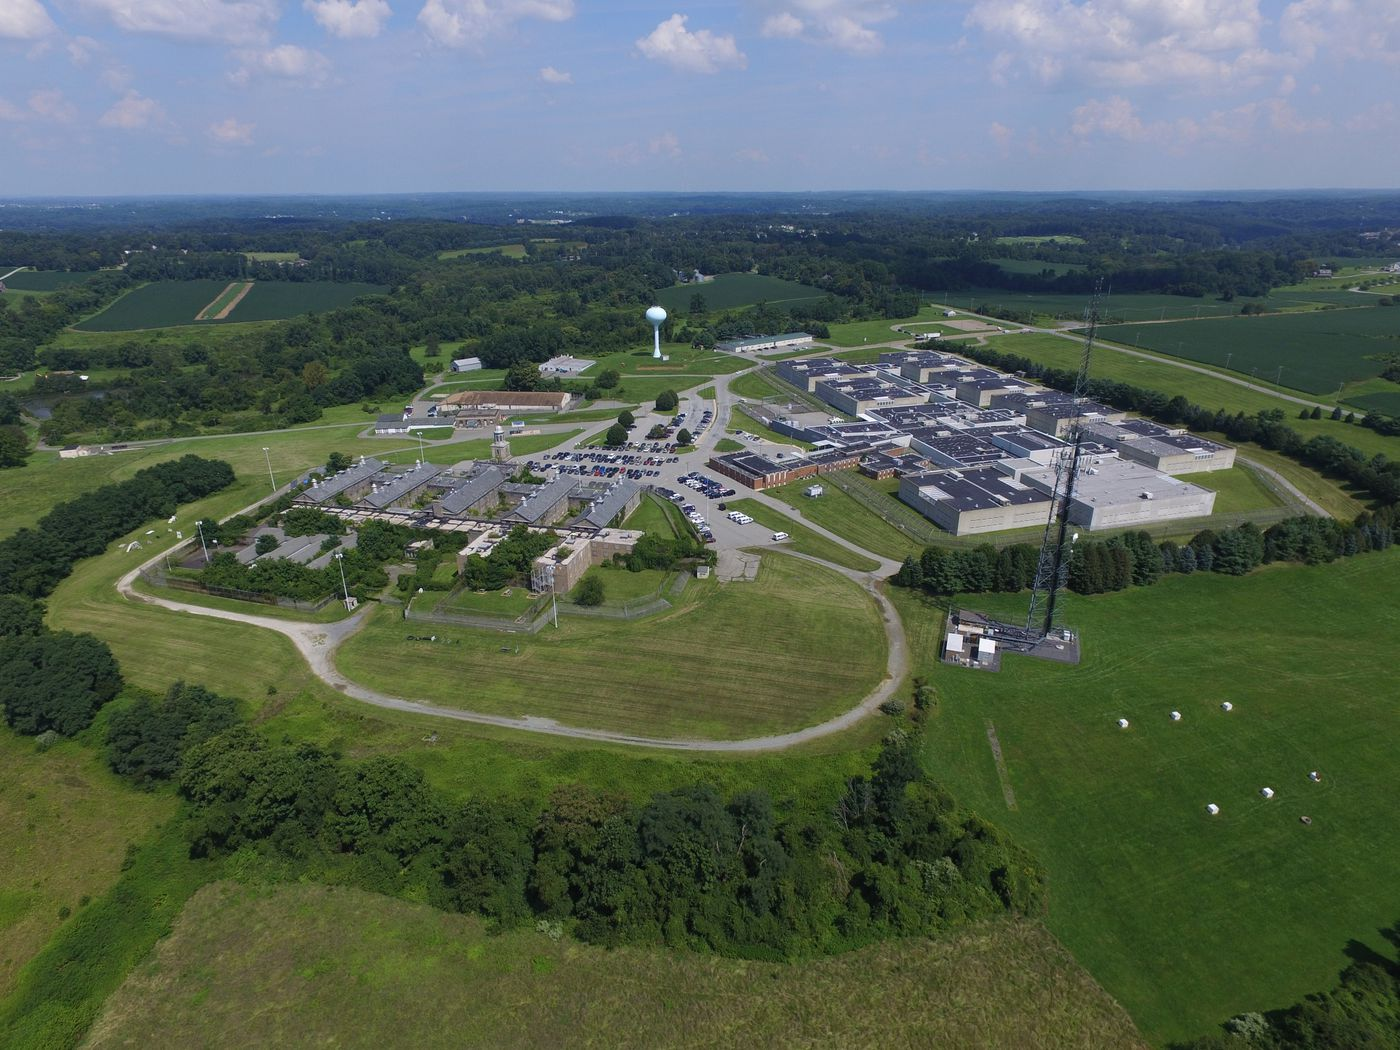 Delco residents, pols take aim at private county prison in